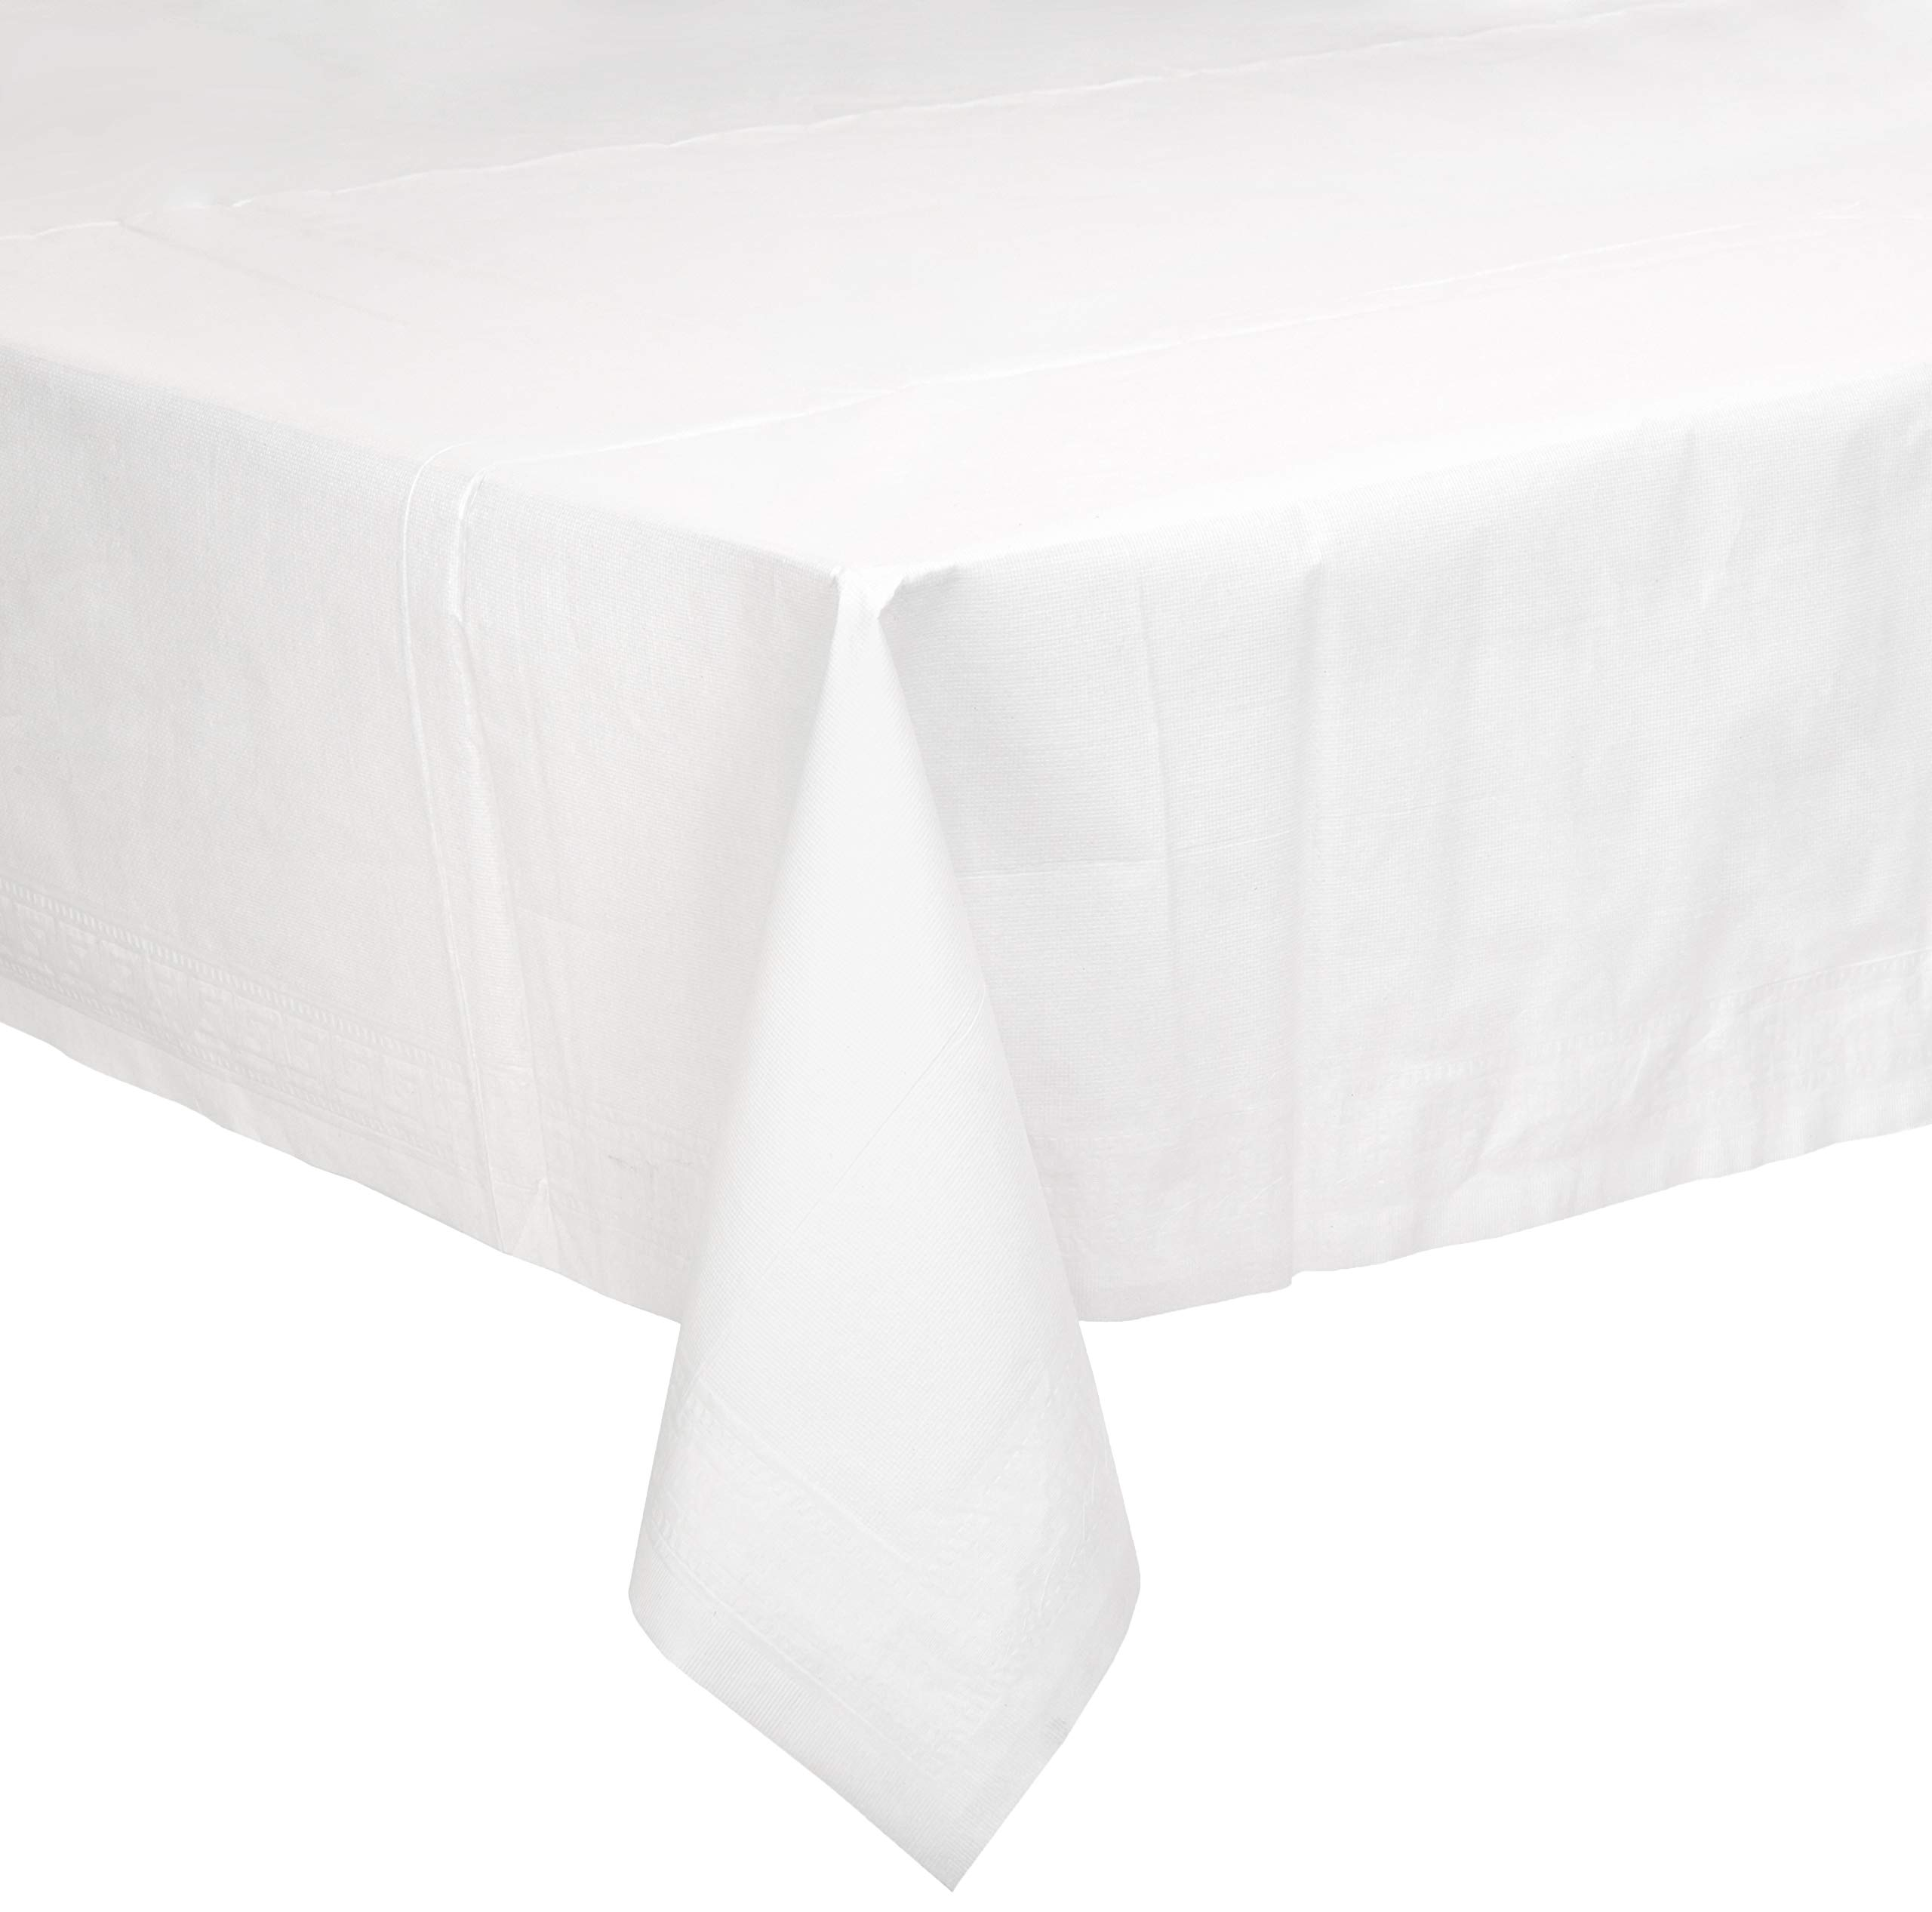 AmazonBasics Poly-Lined Paper Tablecloth, 54'' x 108'', White, 25-Count